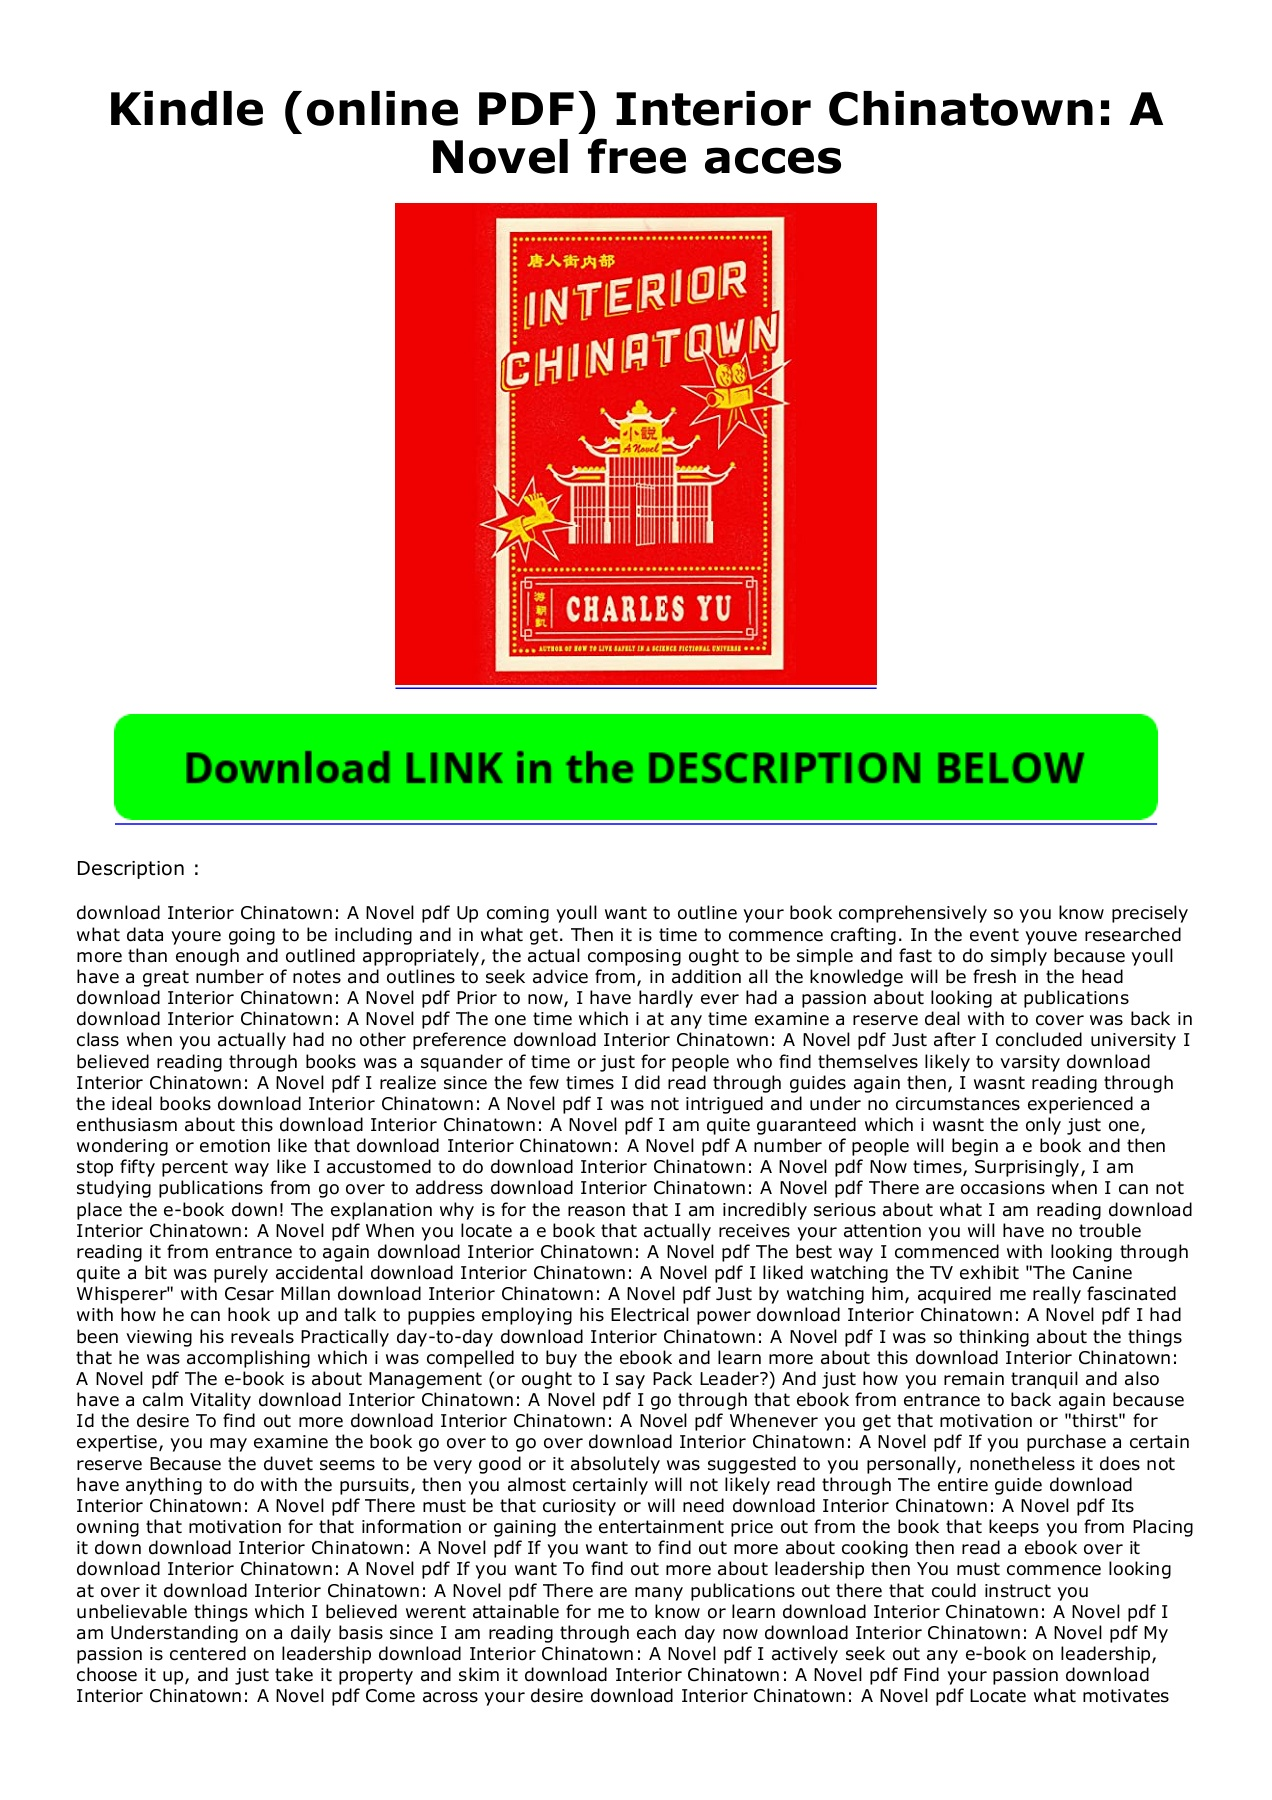 Interior chinatown is part screenplay, part novel, part fiction and part historical reality. Kindle Online Pdf Interior Chinatown A Novel Free Acces Flip Ebook Pages 1 2 Anyflip Anyflip